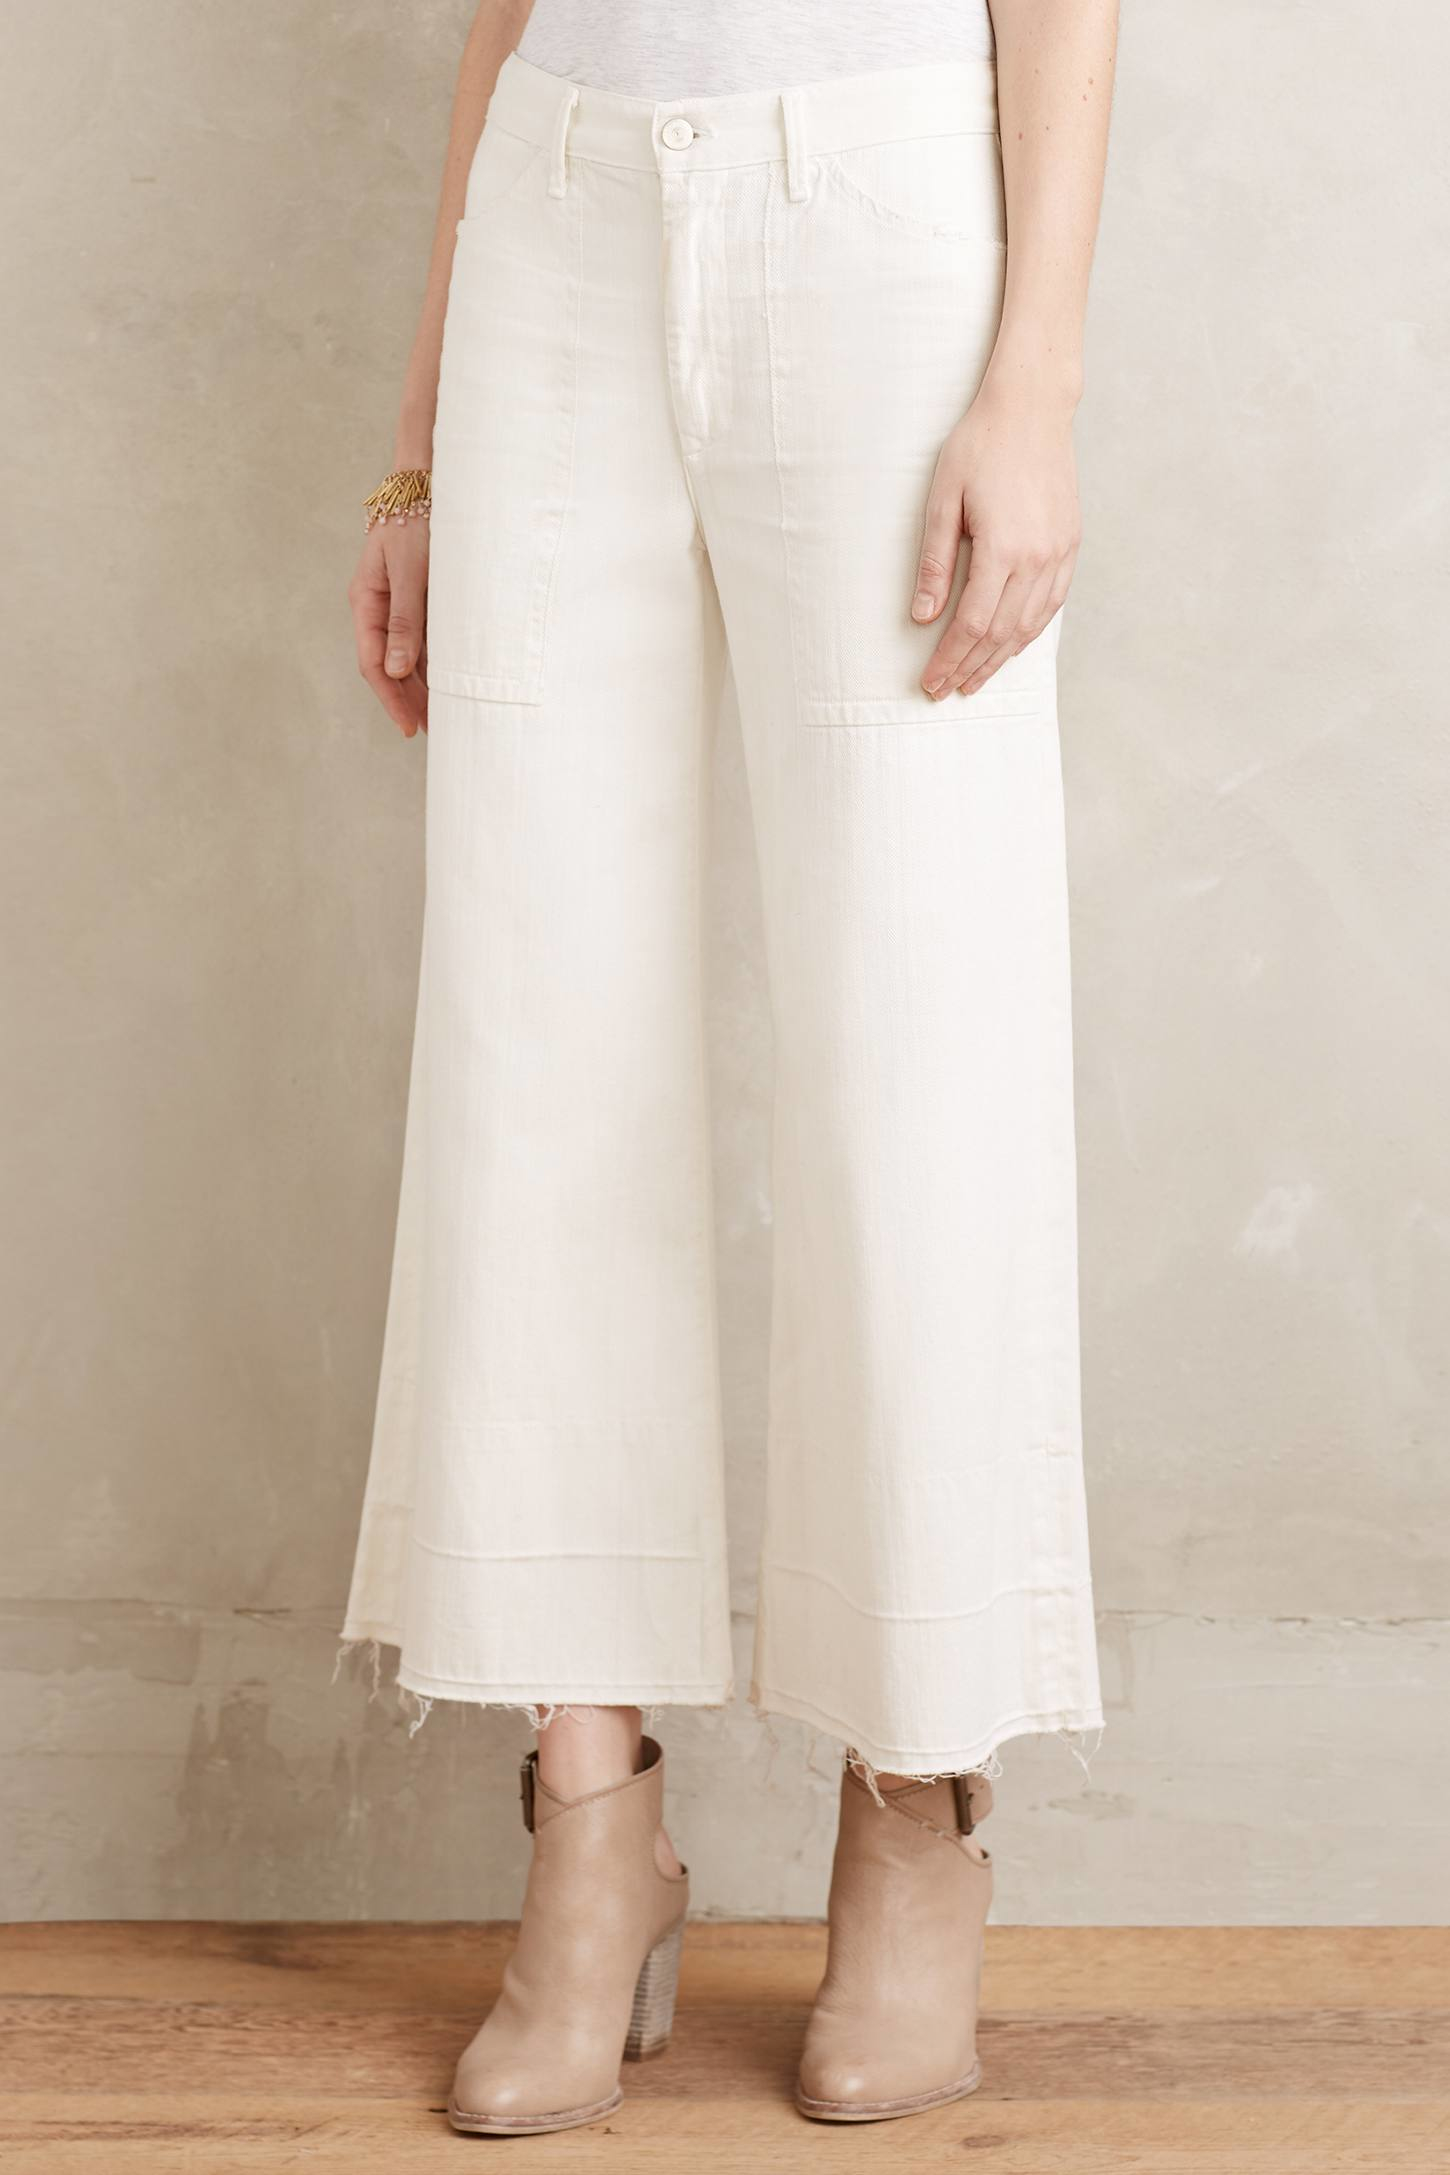 citizens-of-humanity-white-melanie-cropped-wide-legs-product-2-062186450-normal.jpeg